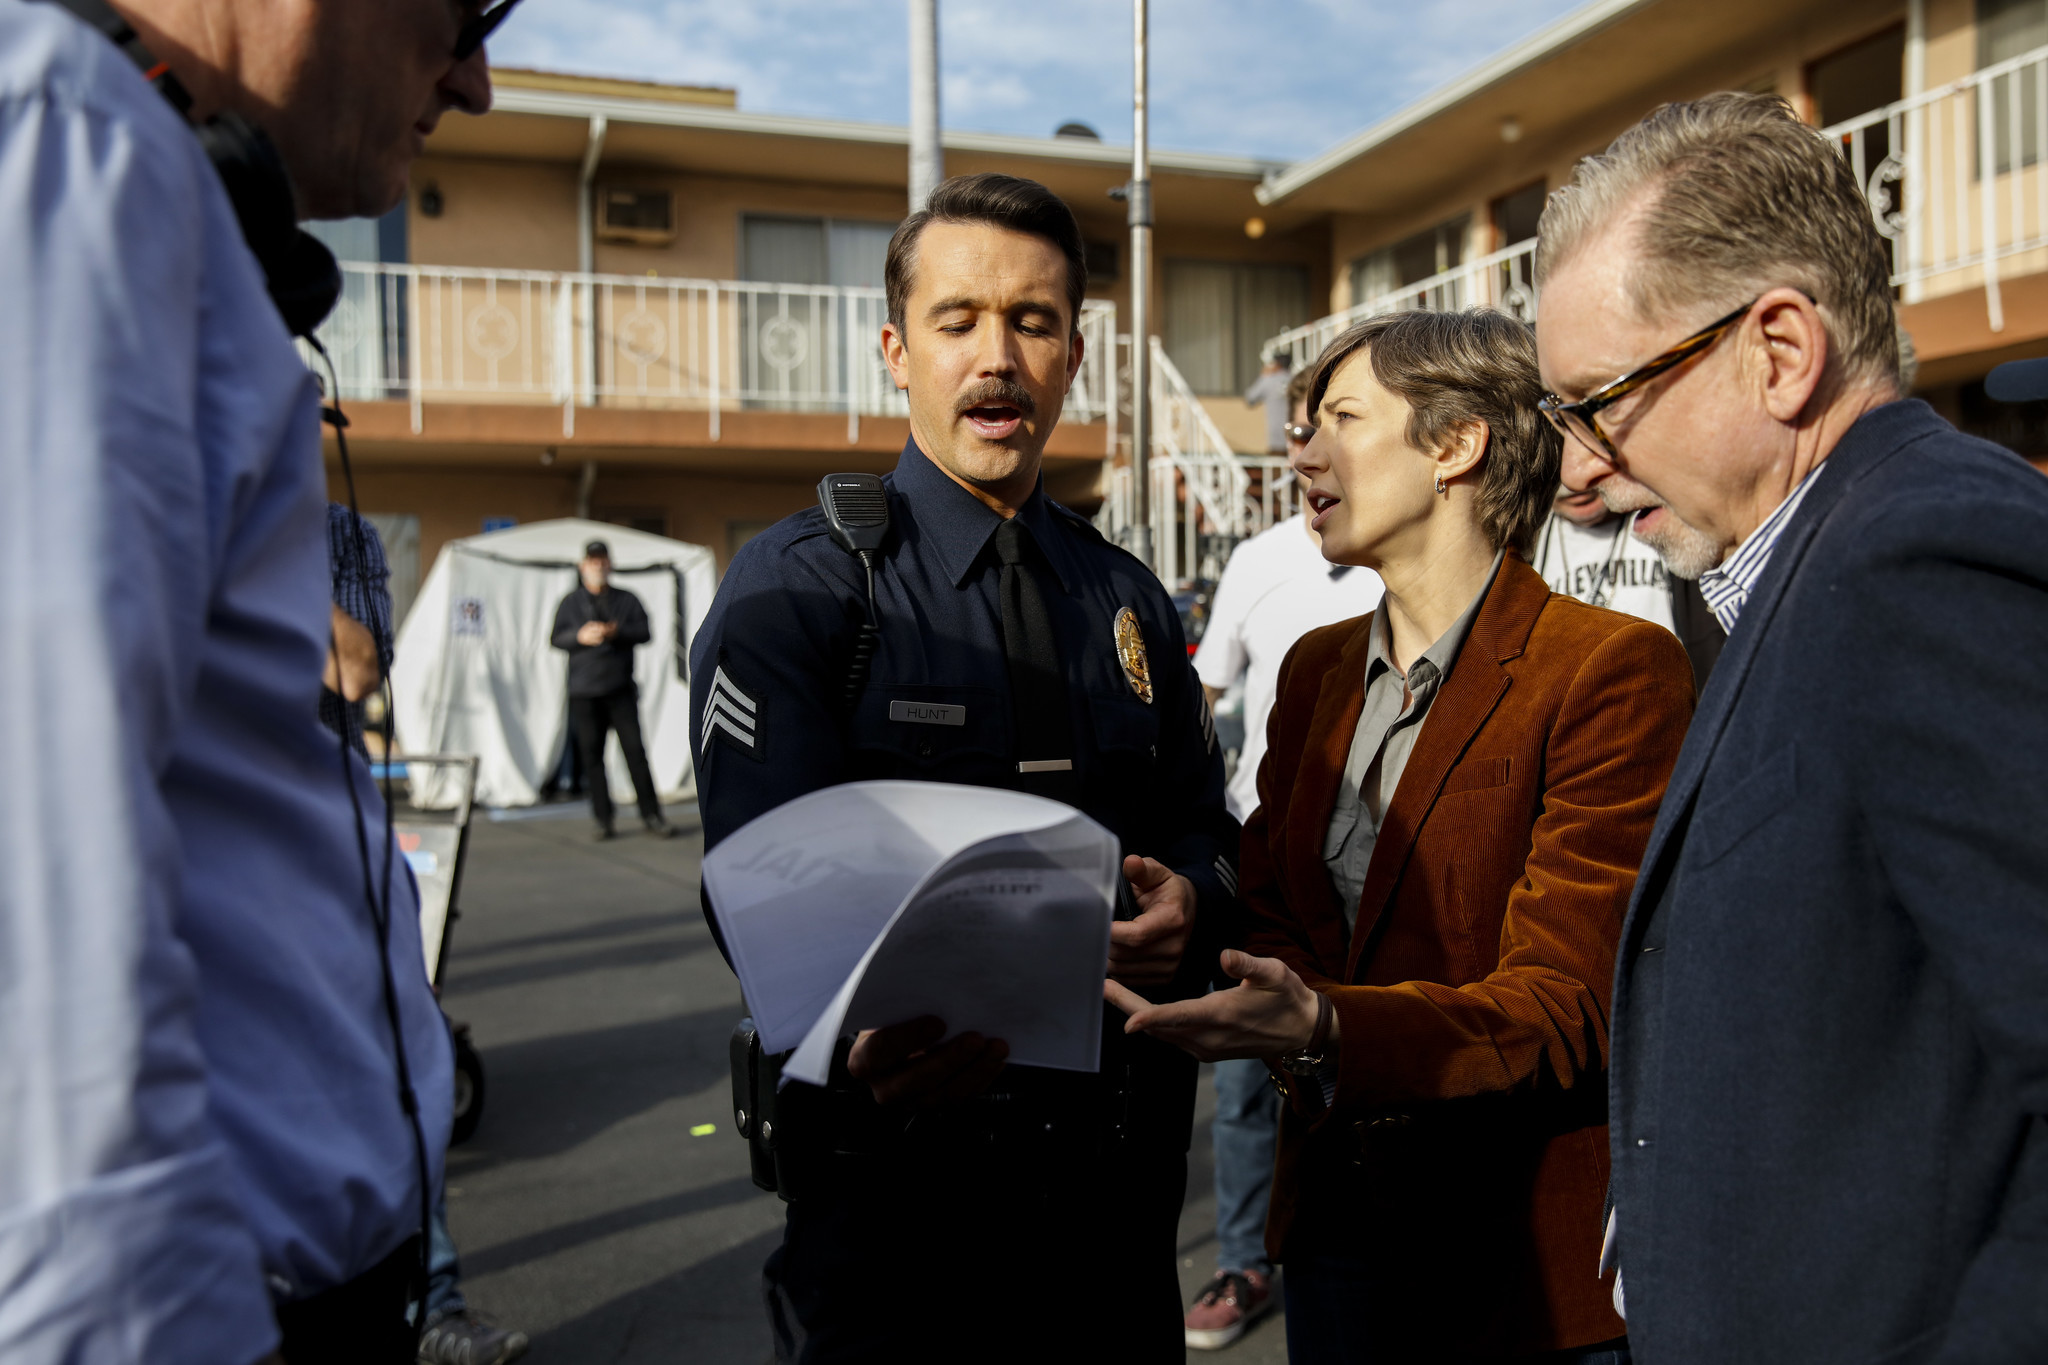 Director John Cameron, left, and producer Warren Littlefield, right, frame actors Rob McElhenney and Carrie Coon after concluding a day of filming, on the set of FX's Season 3 of